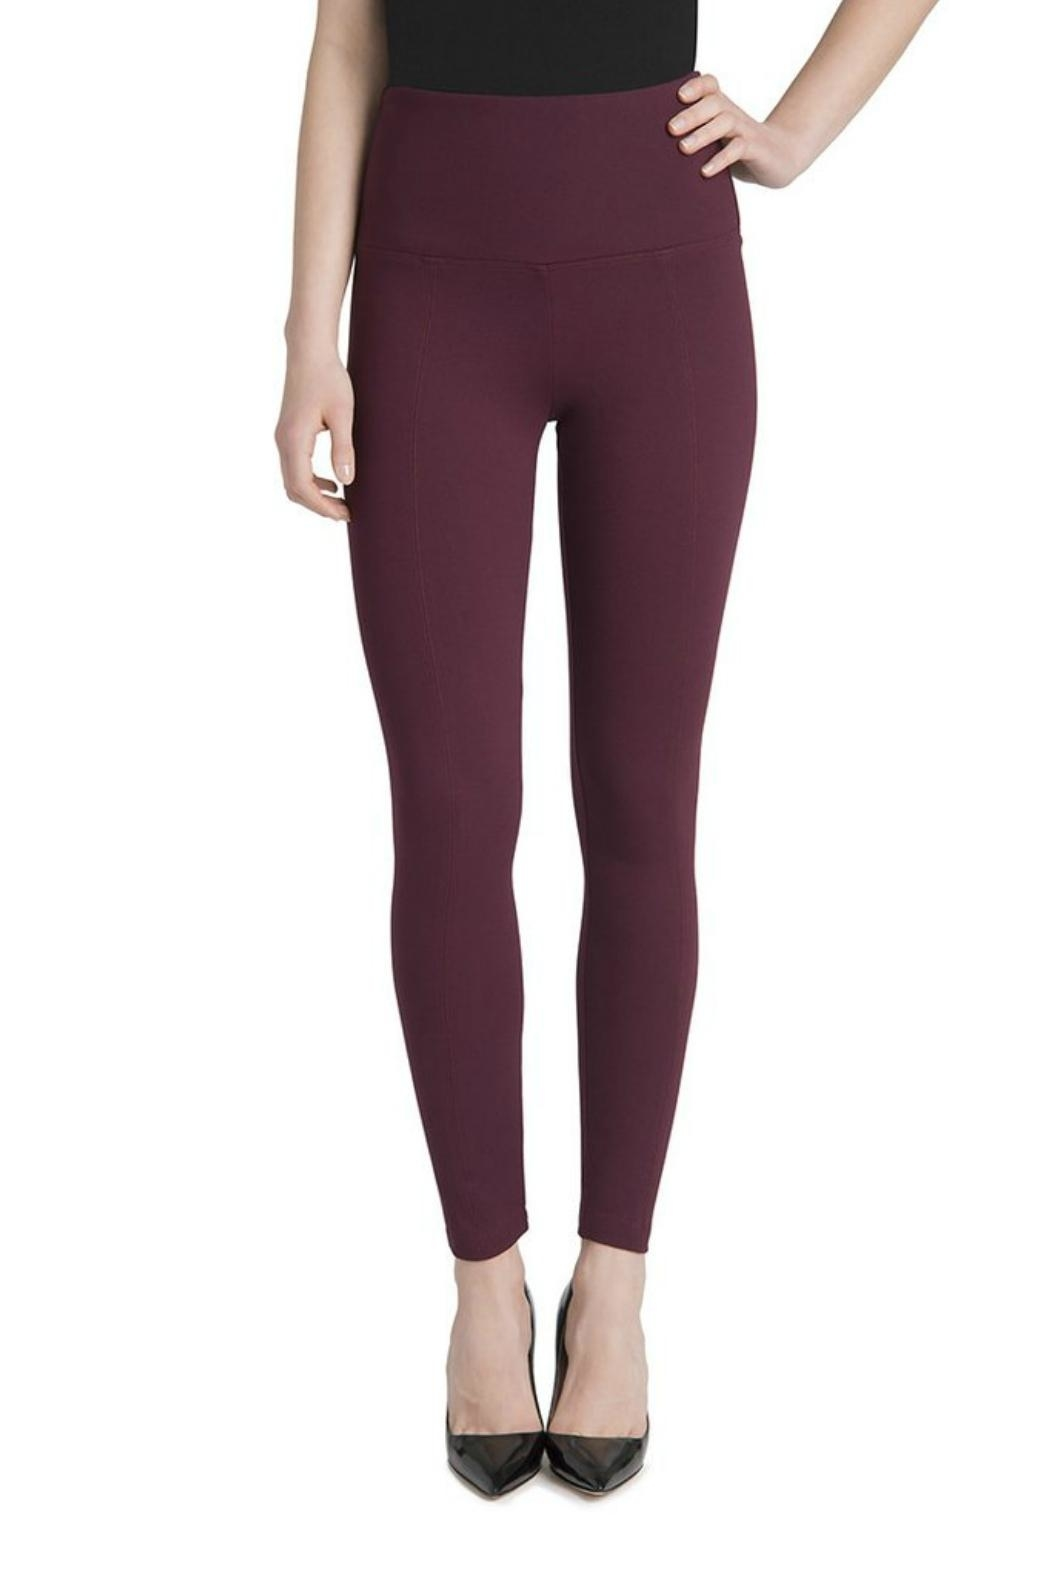 Lysse Center Seam Ponte Legging - Front Cropped Image